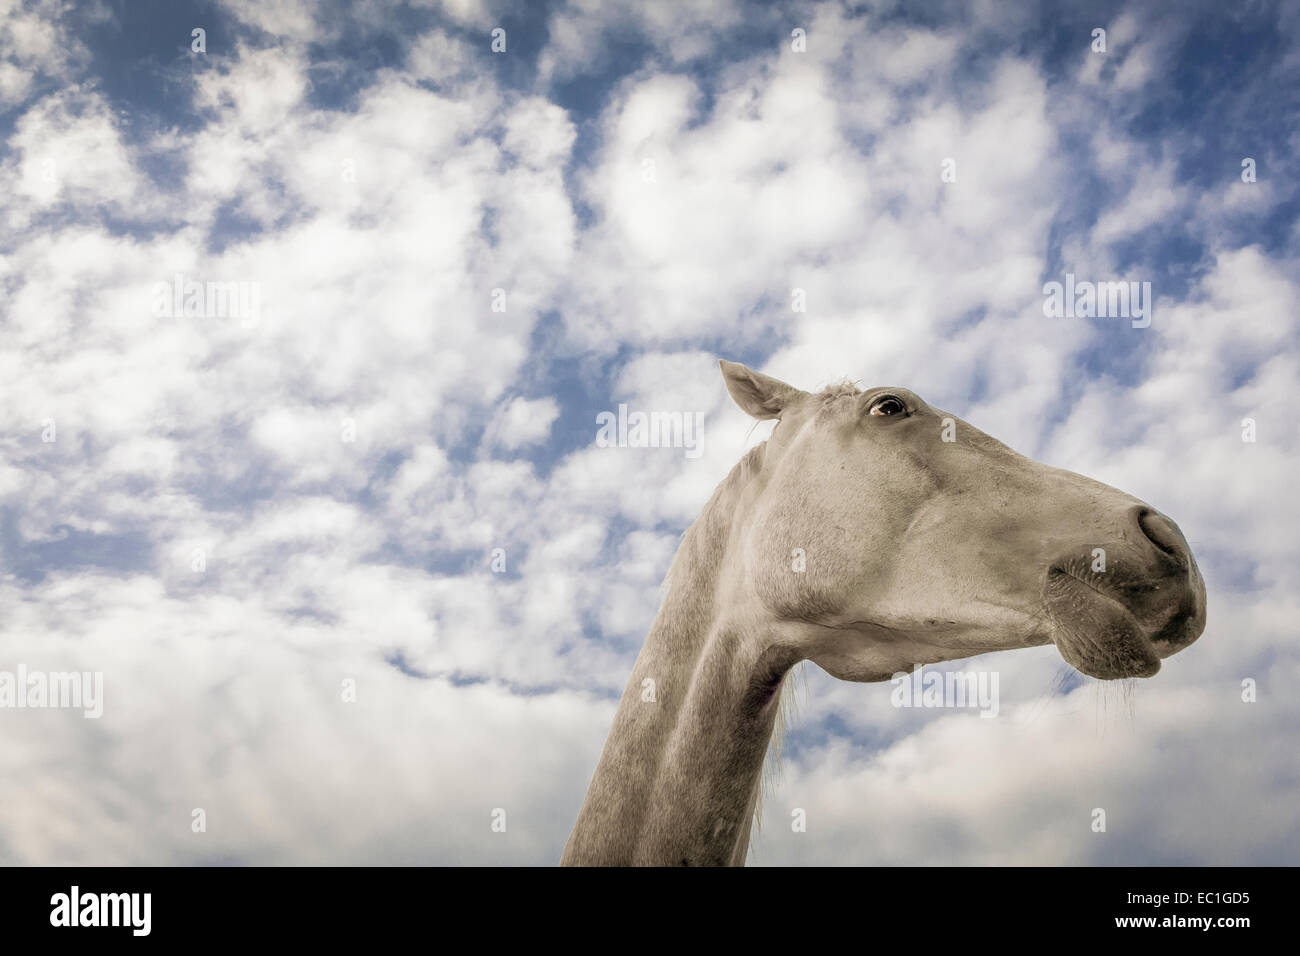 Extreme low angle view of horse's head against summer sky Stock Photo